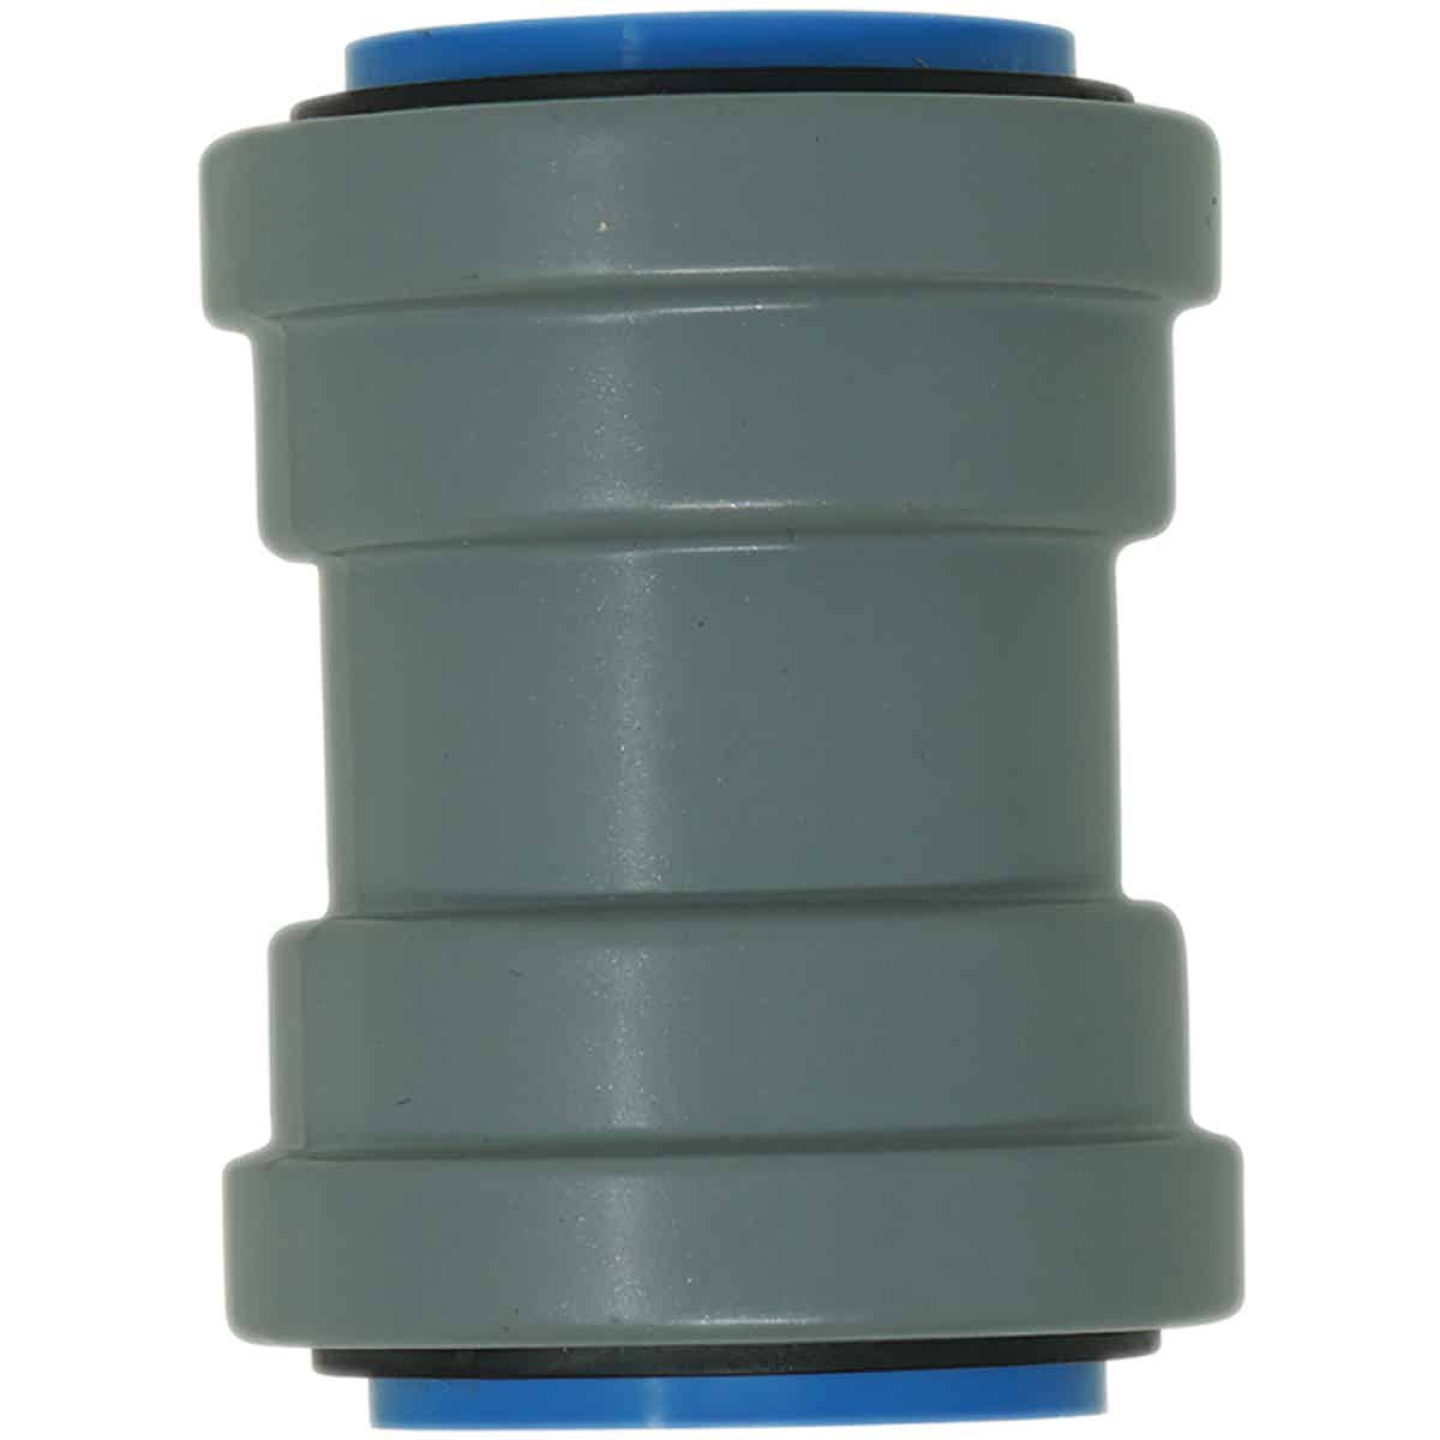 Southwire SimPush 3/4 In. EMT Push-To-Install Watertight Conduit Coupling Image 1